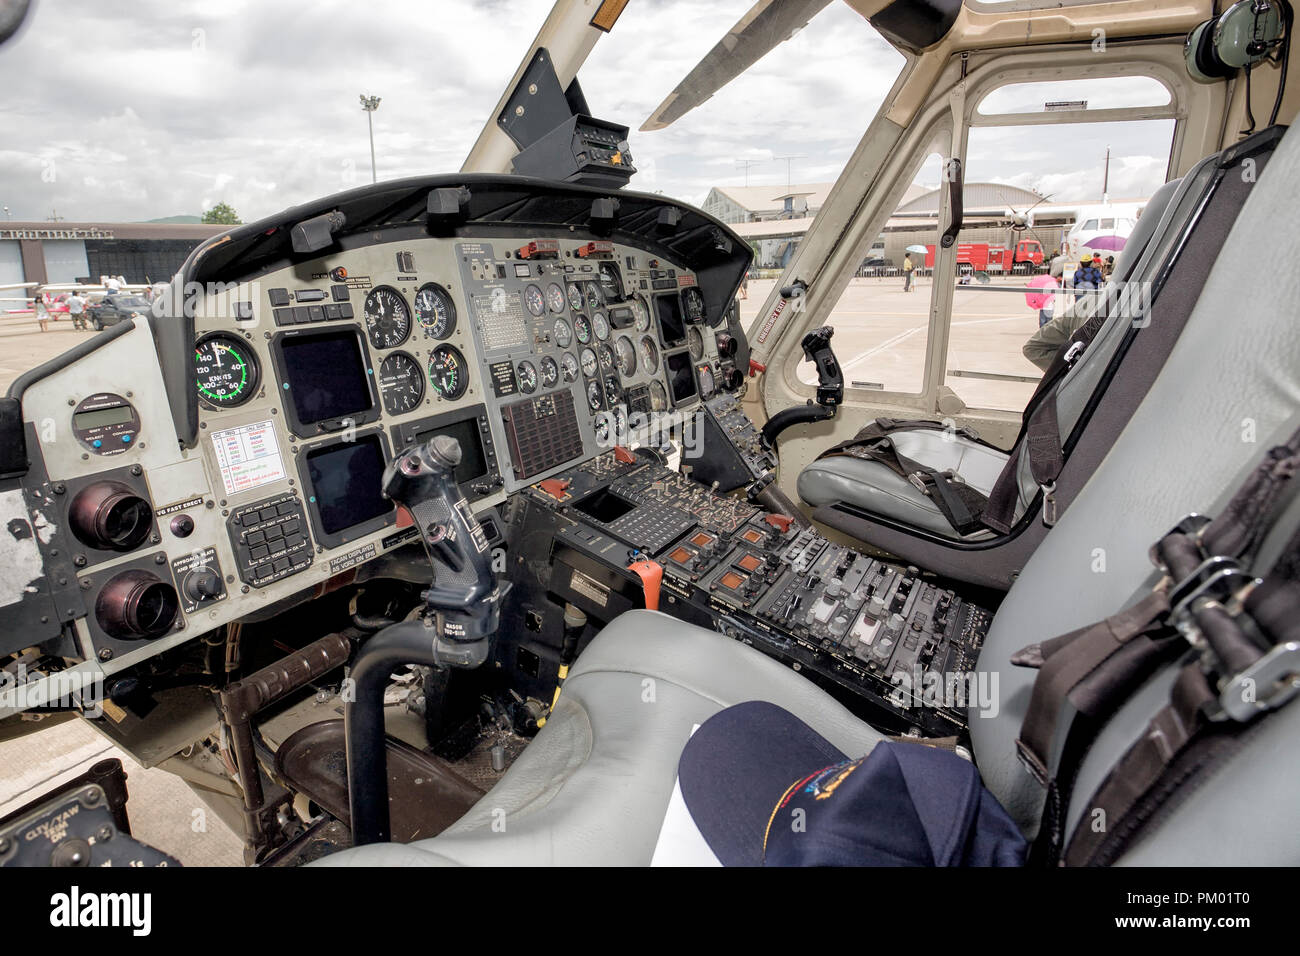 Helicopter cockpit. Interior view of Thai Air force helicopter - Stock Image